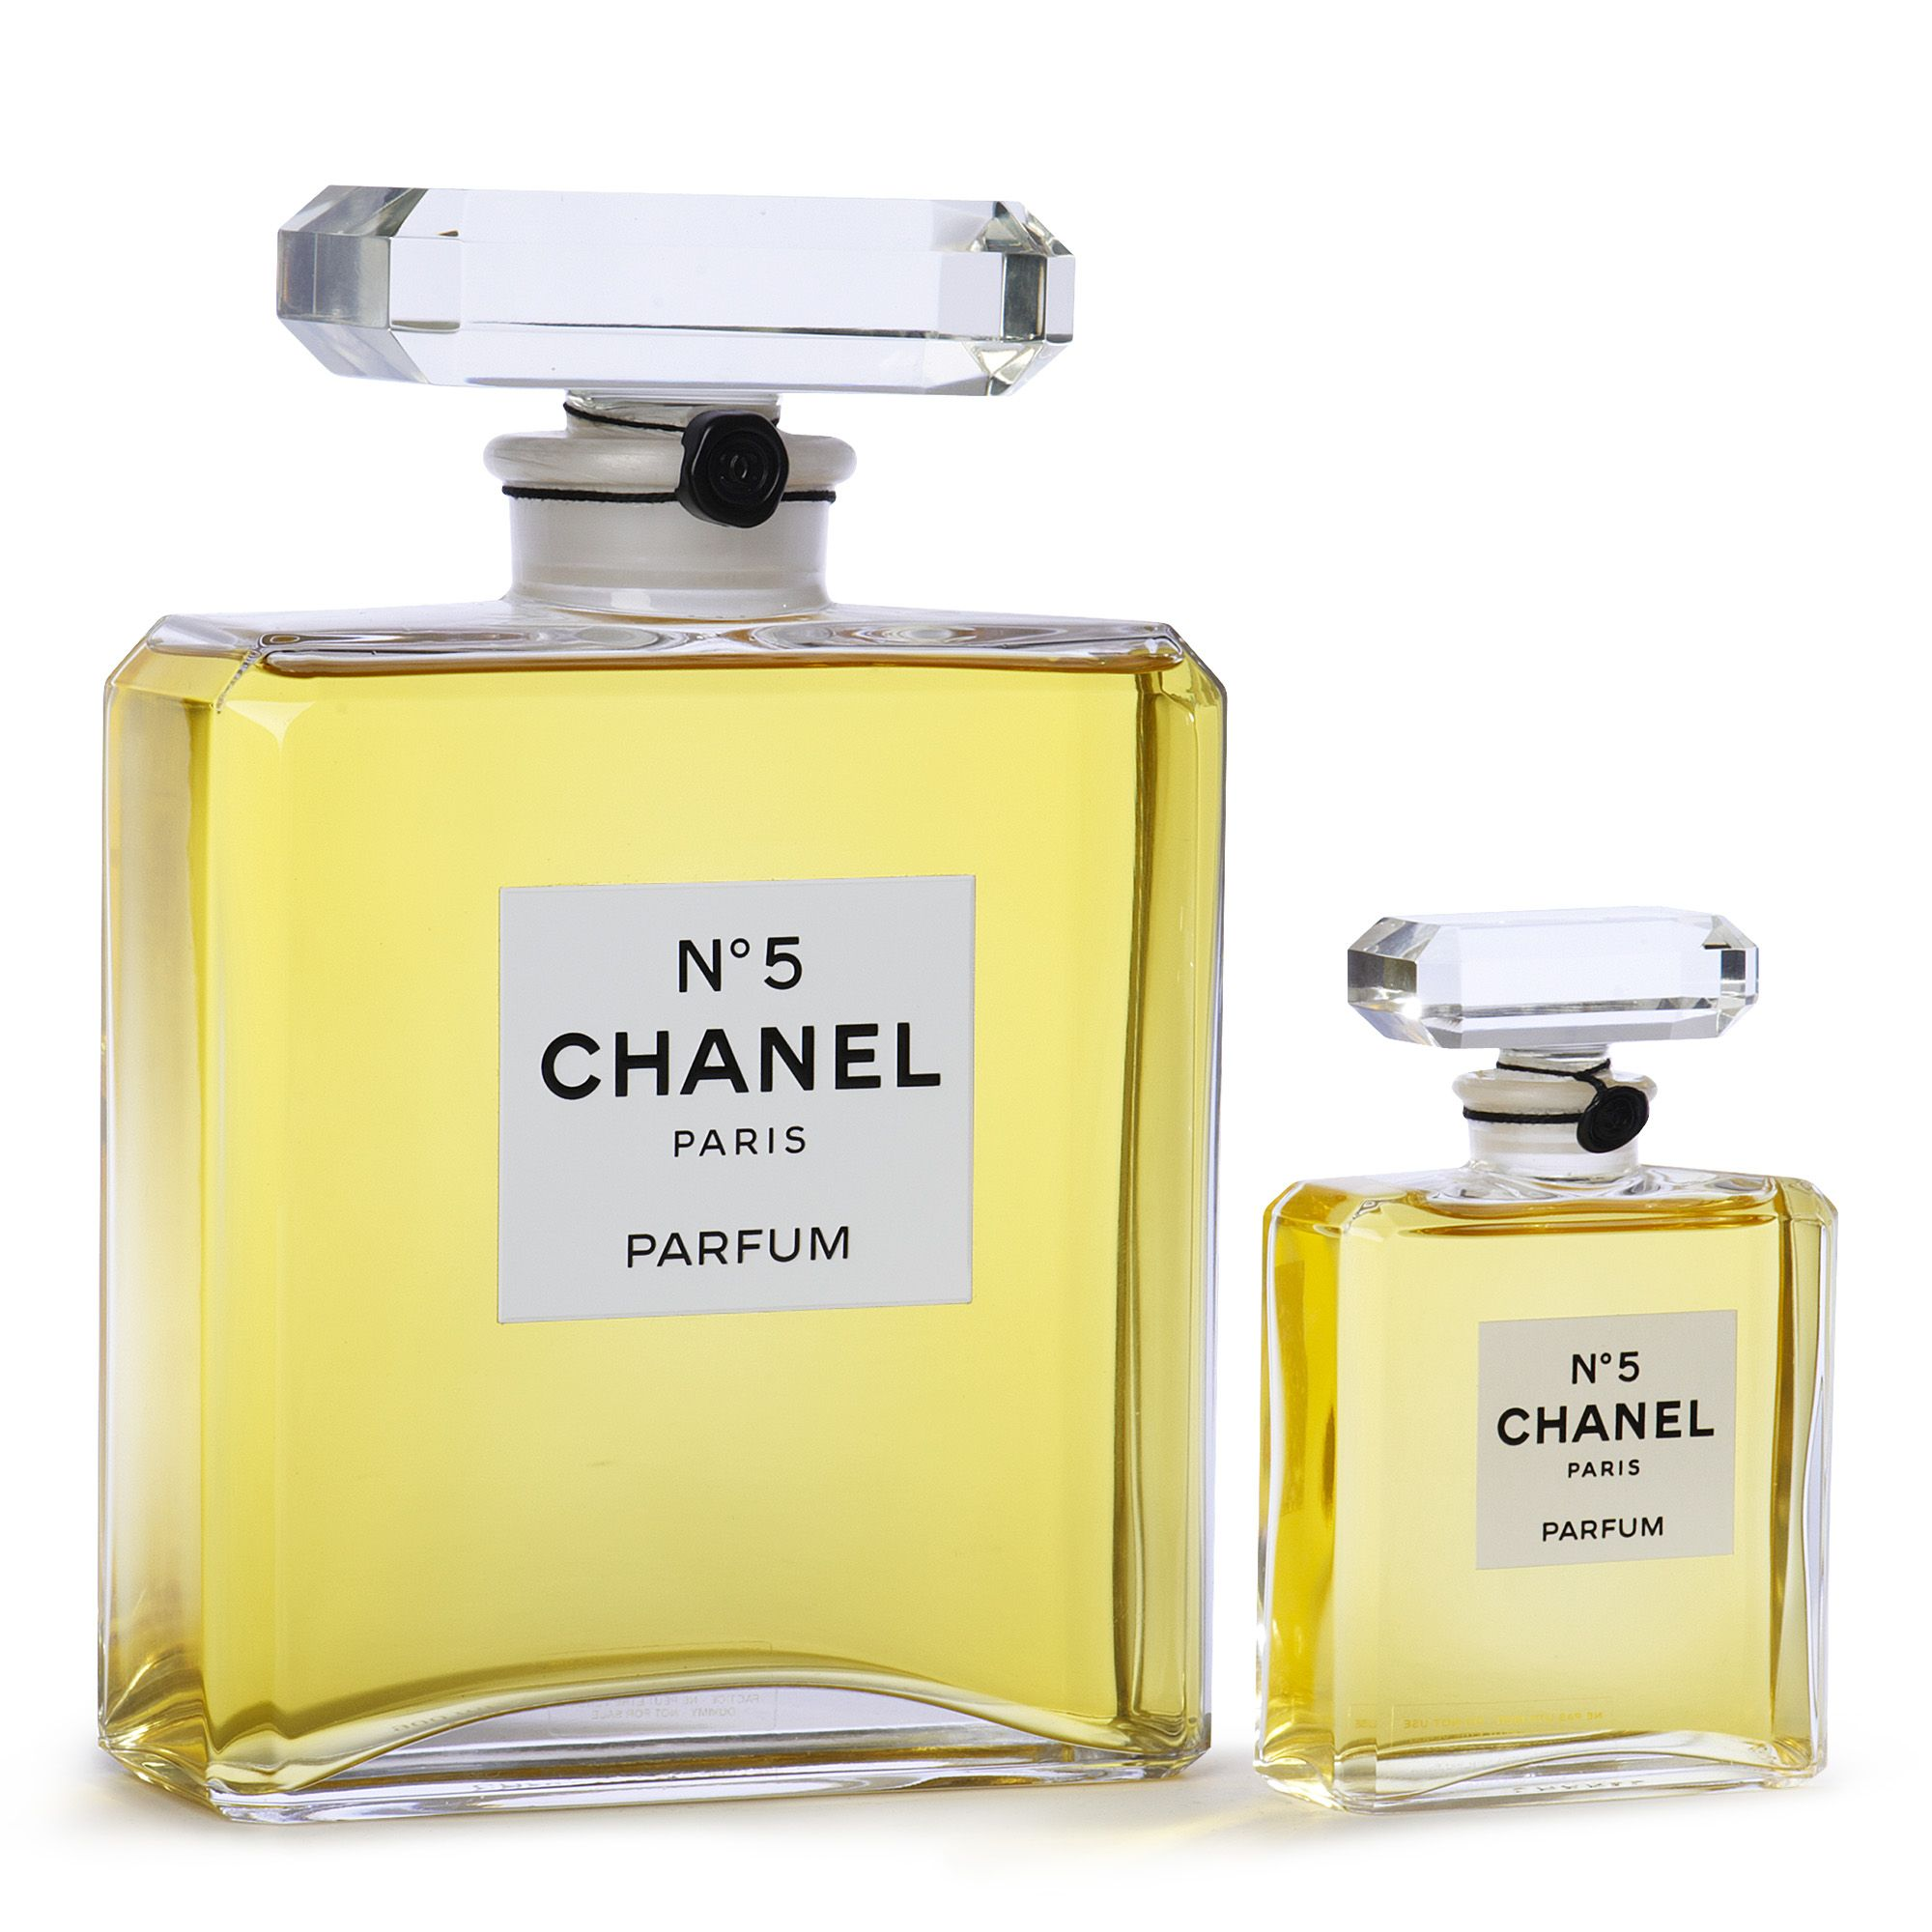 Classic Chanel Perfume Bottle No5 Menagerie Of Favorites